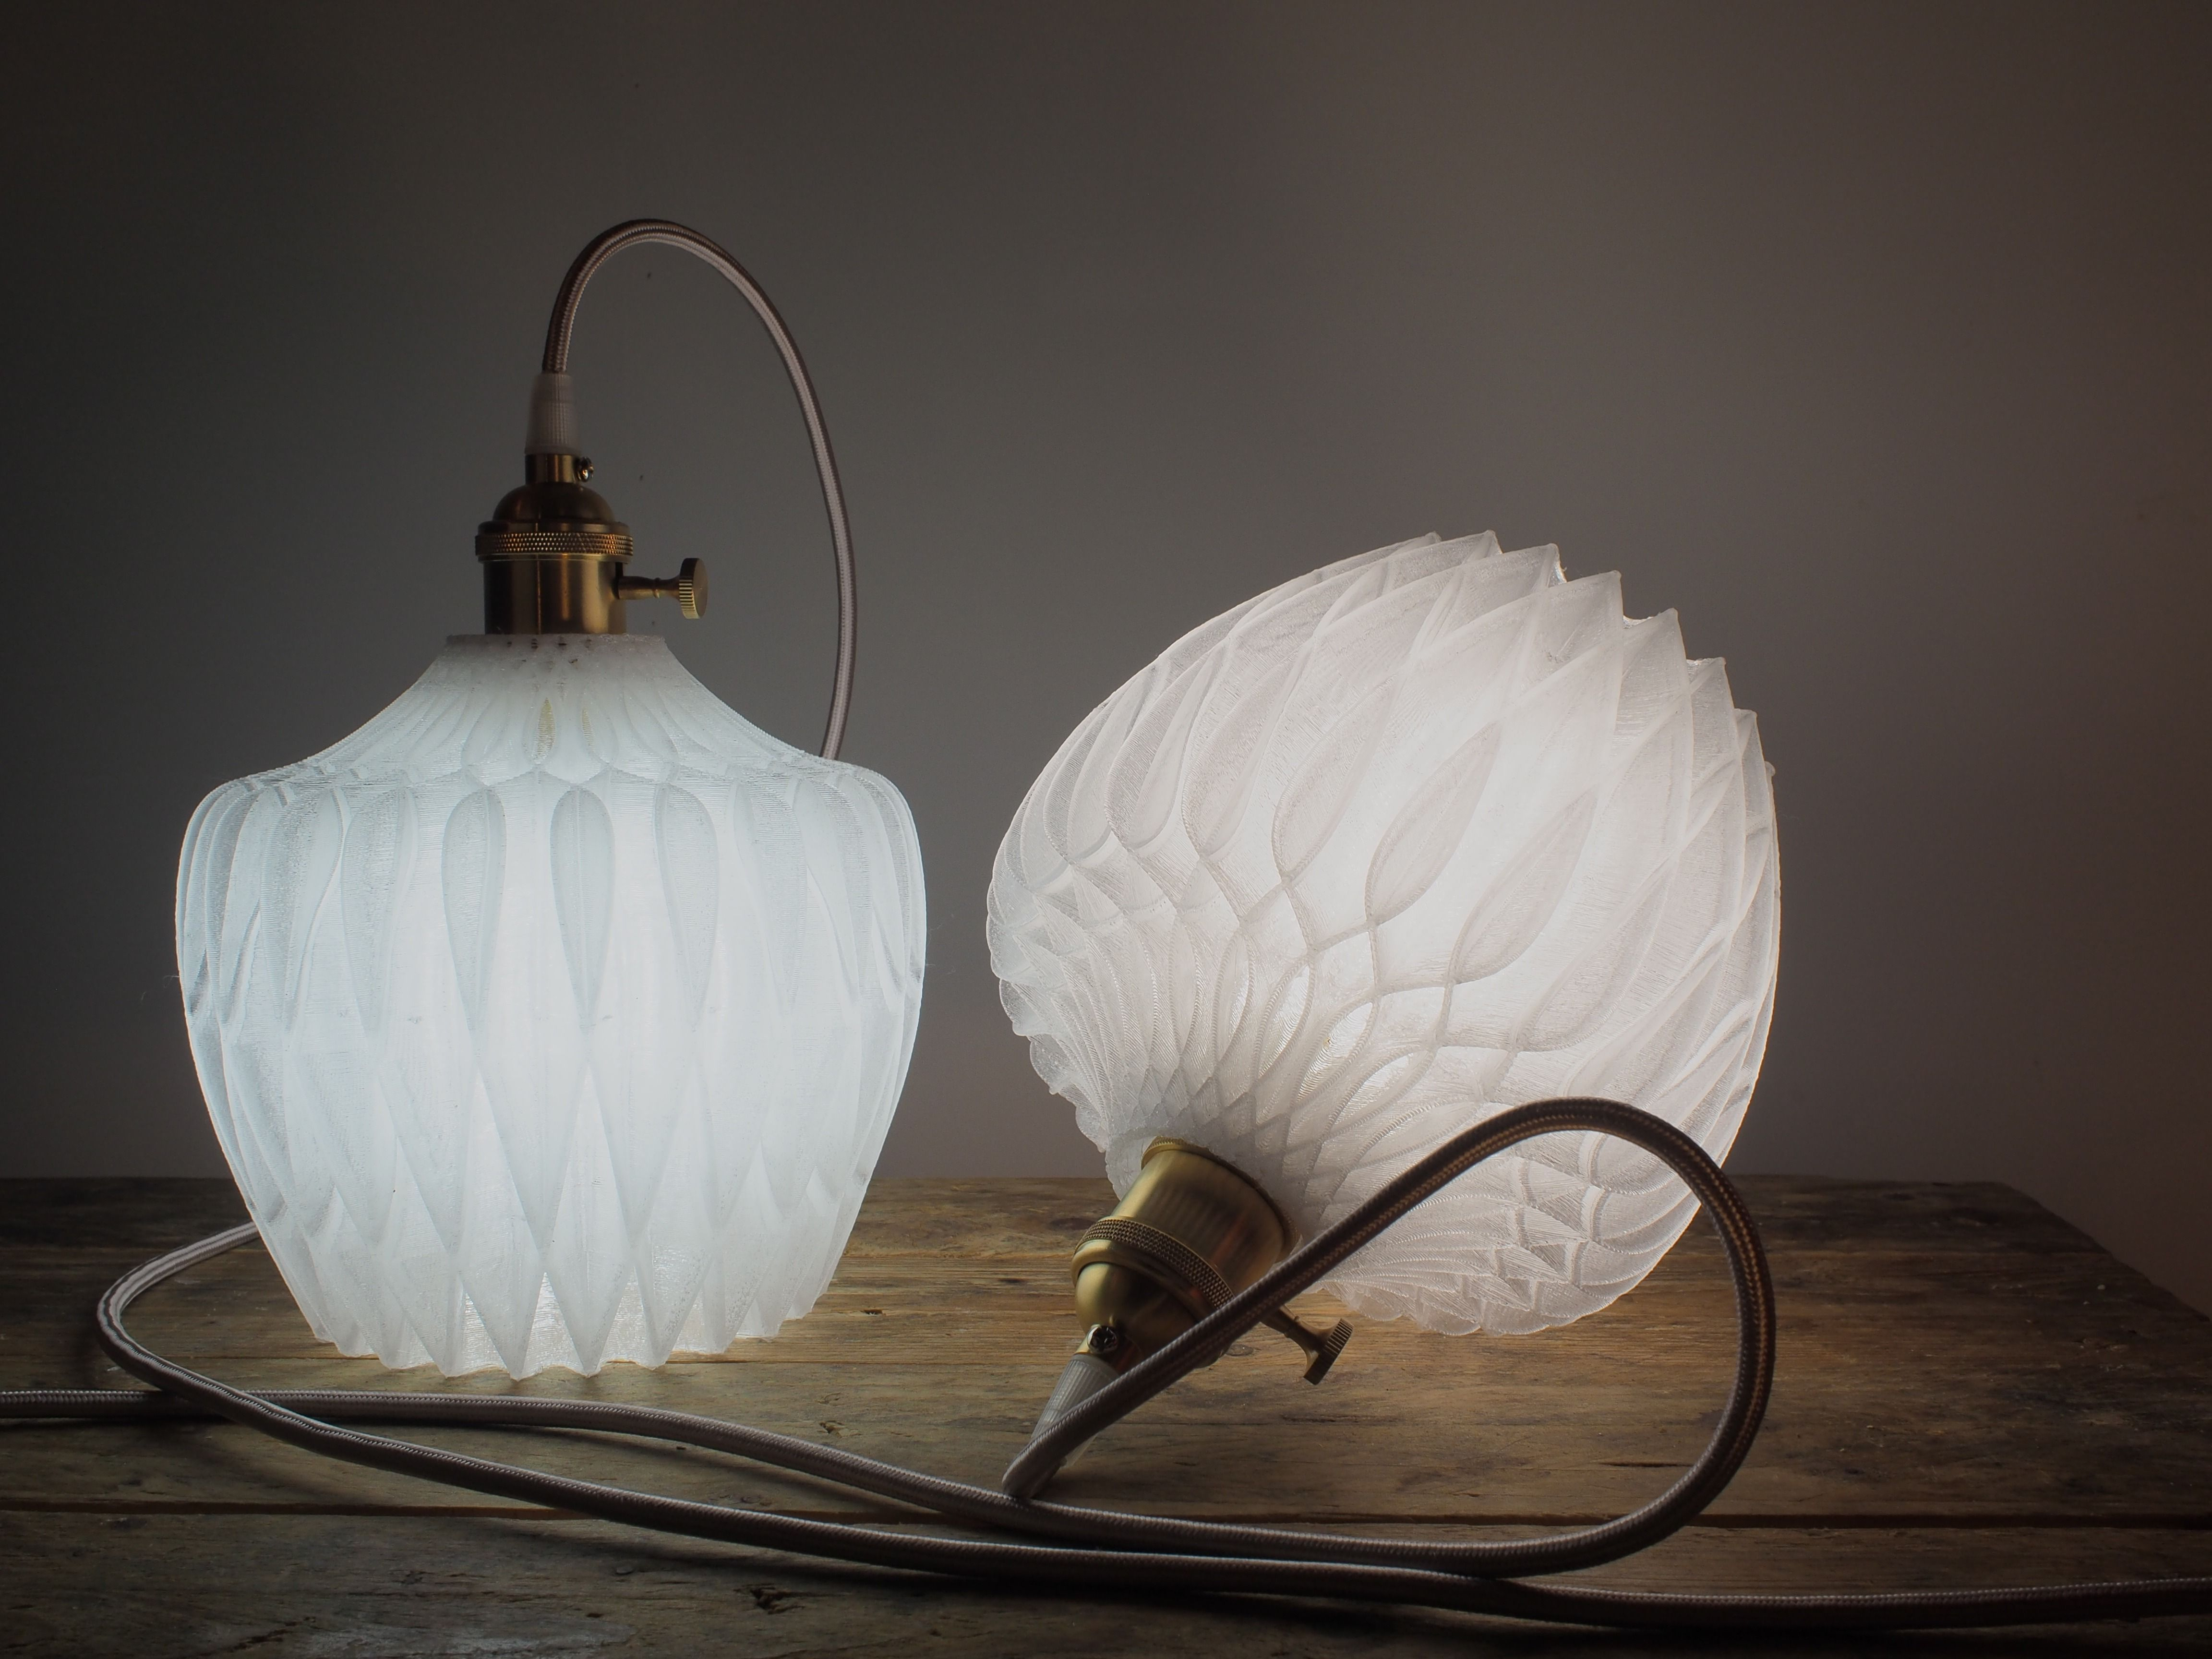 Architect Designer Nicolas Muller From France Uses Ngen Clear To Create His Custom Shiny Leaves Lamp Shade Ngen Is An Easy To Lamp Lamp Shades 3d Printing